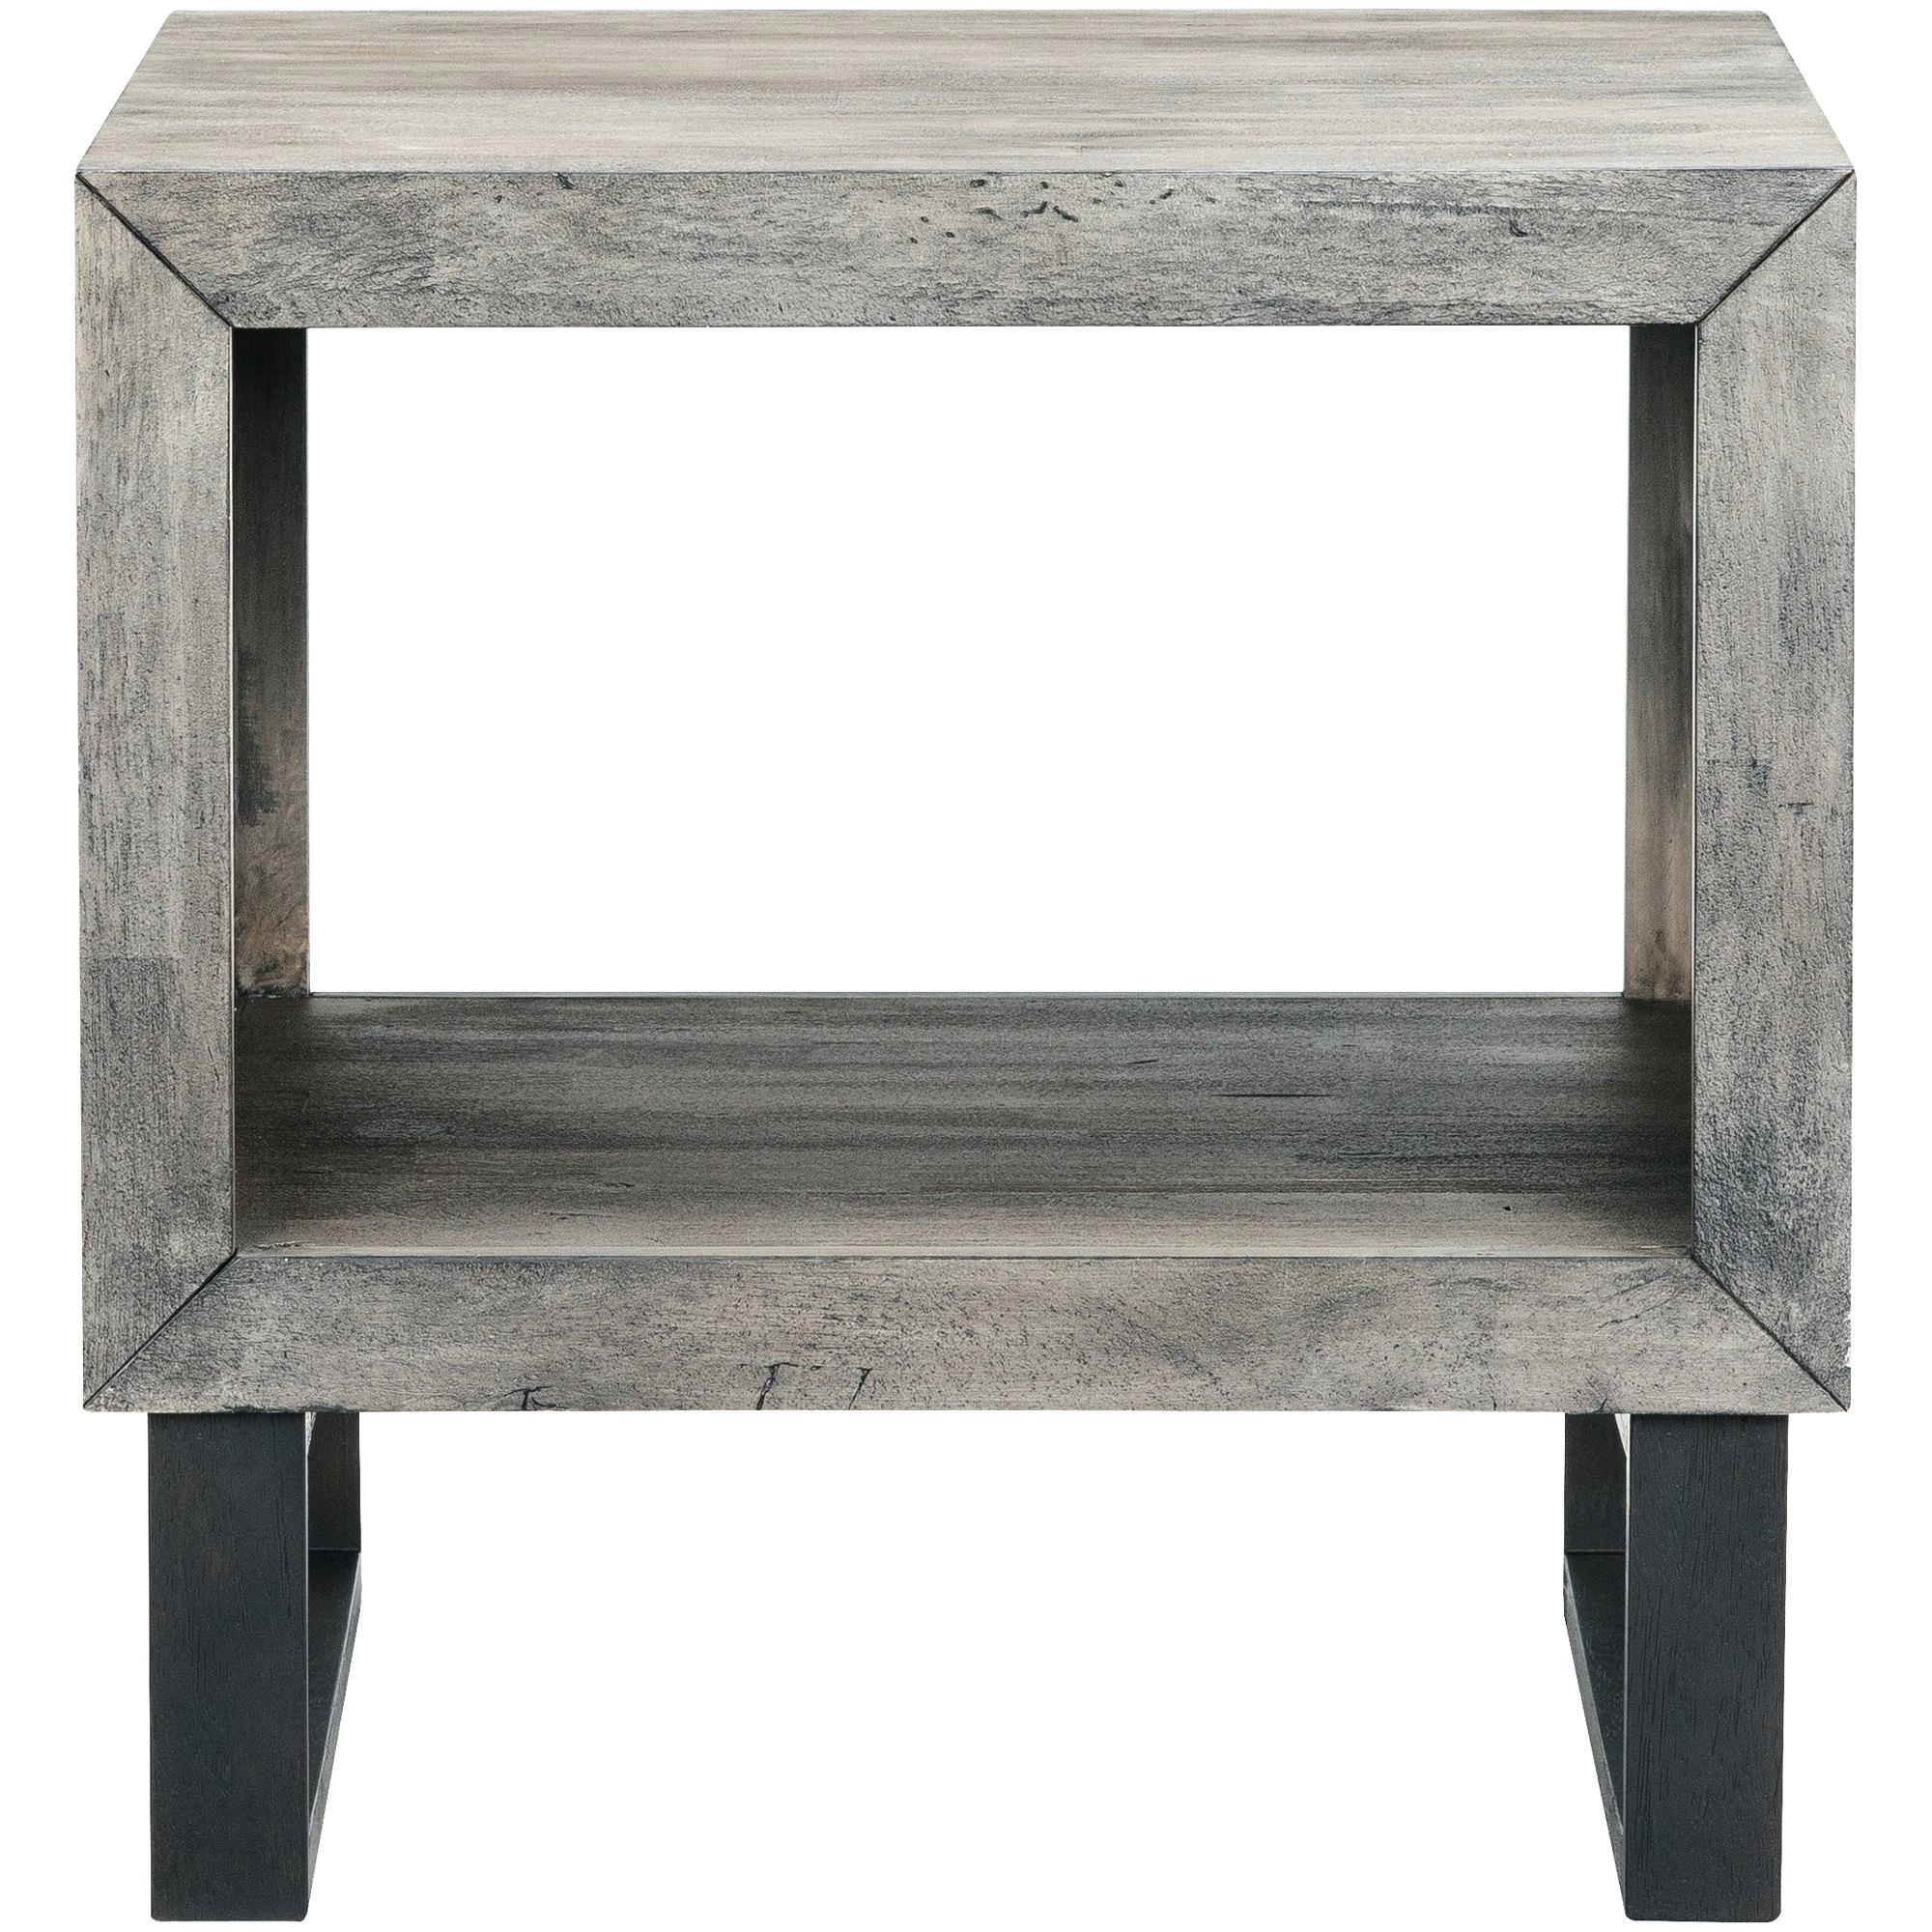 grey accent table gray wash jamesfrank info drive sandblasted metal eyelet related post brown coffee oval patio round wood and glass end tables pier imports furniture trestle